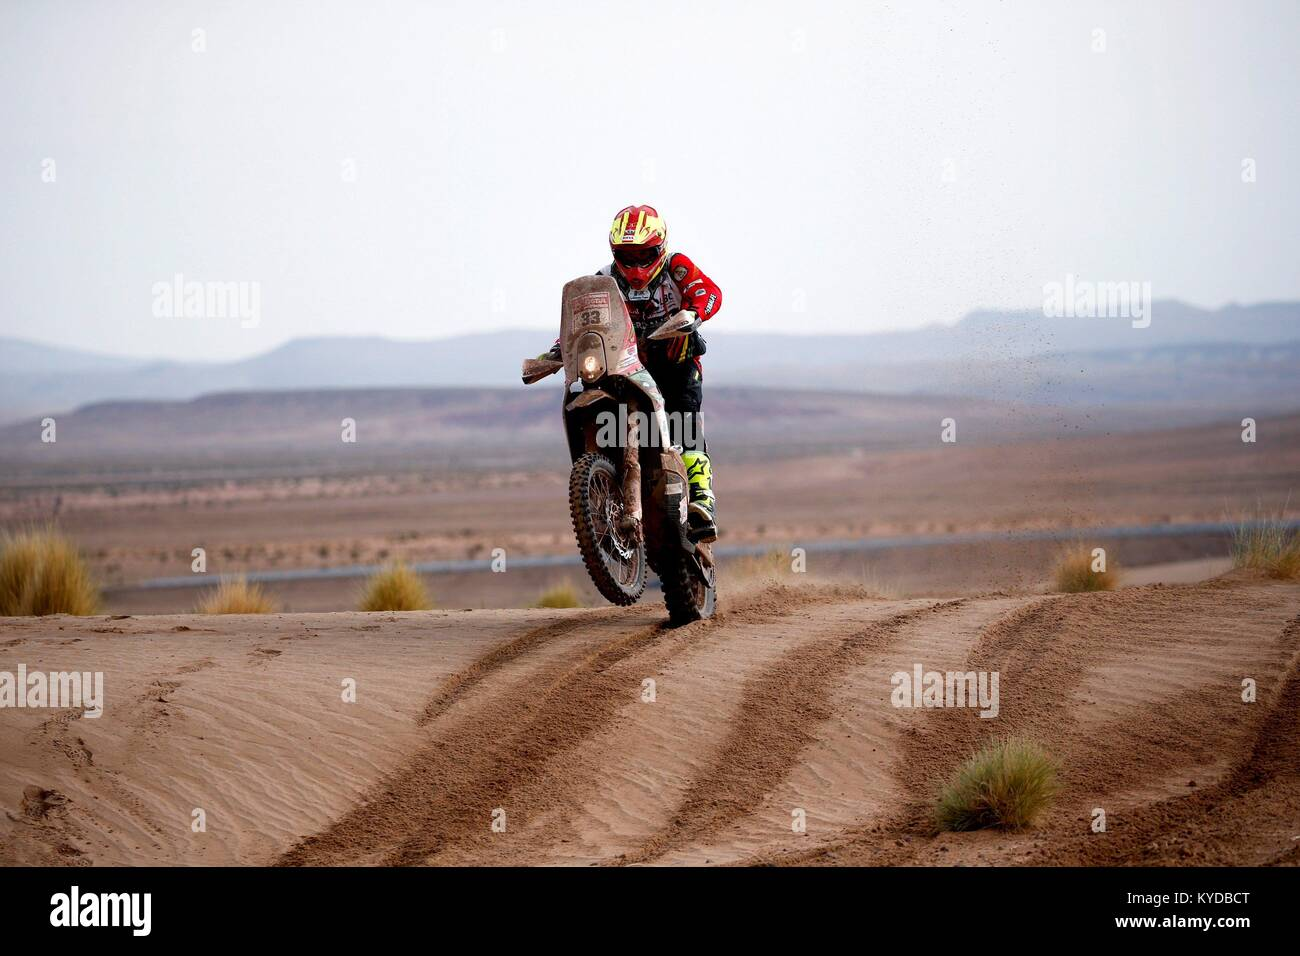 Uyuni, Bolivia. 12th Jan, 2018. The Bolivian Daniel Nosiglia of Husqvarna competes during the eighth stage of the - Stock Image